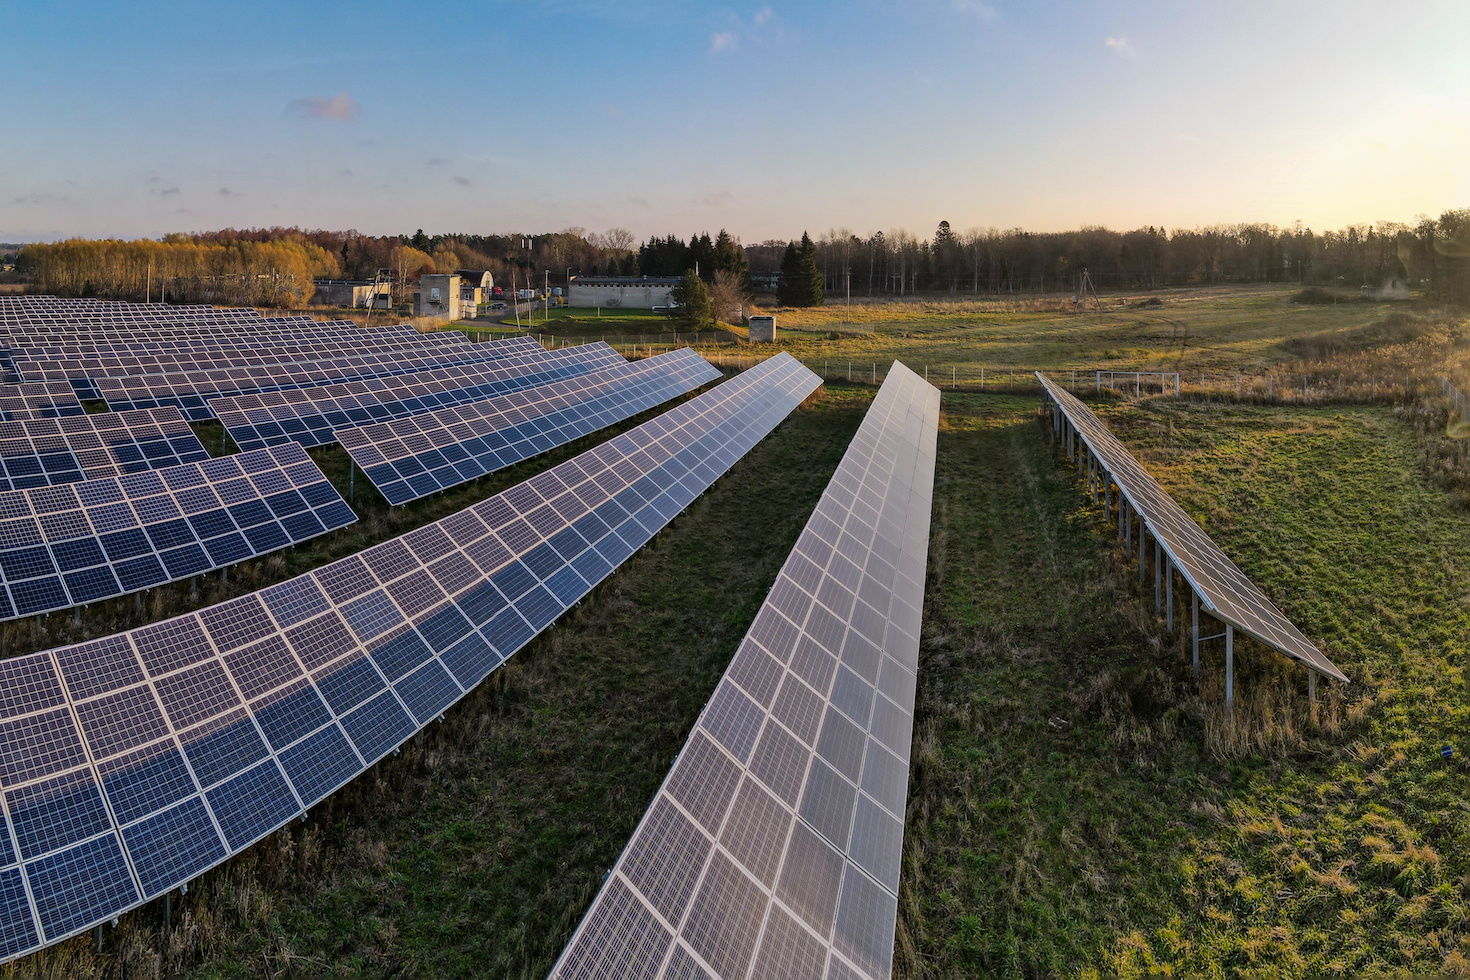 What Biden's clean power plan would mean for solar energy